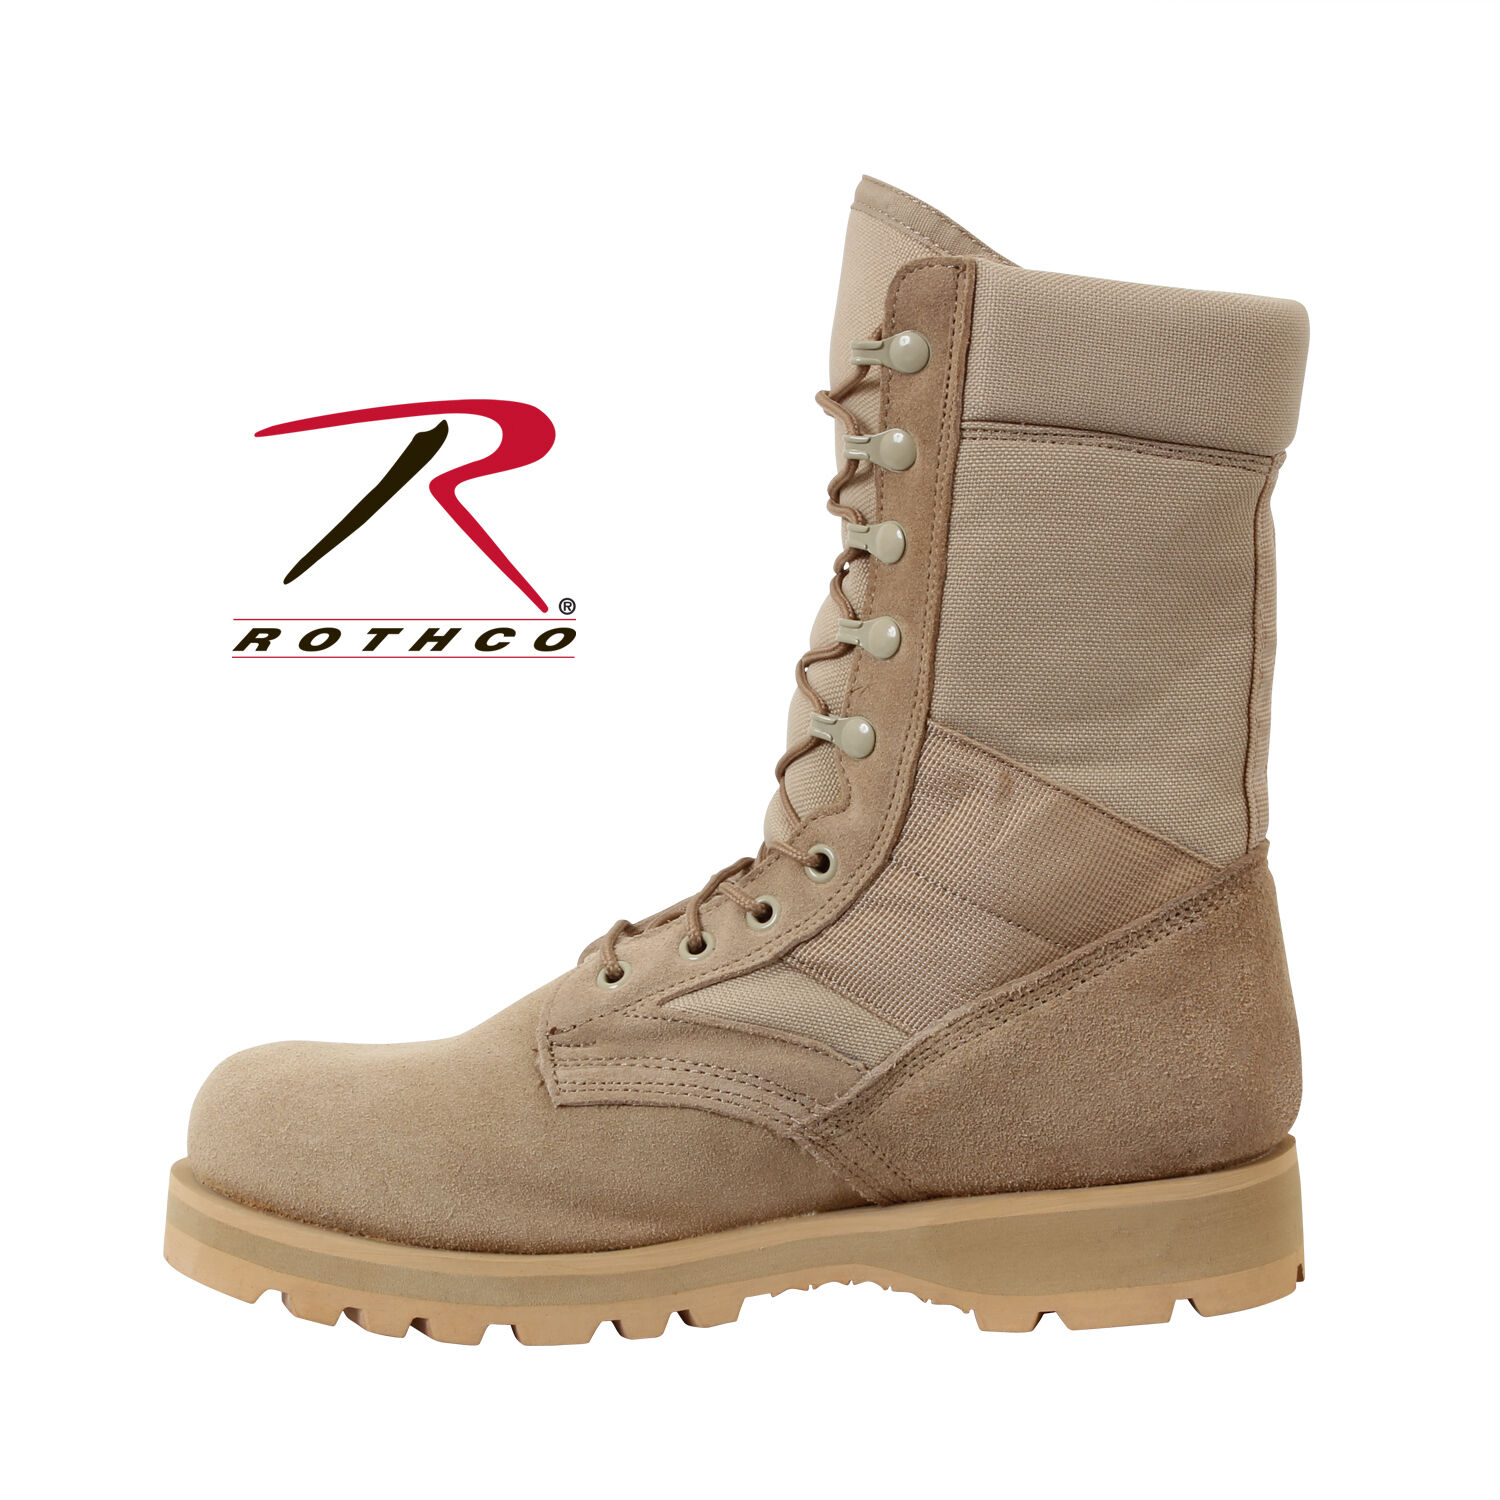 Rothco 5257 G.I. Type Sierra Sole Tactical Stiefel - - - Desert Tan 9777c6